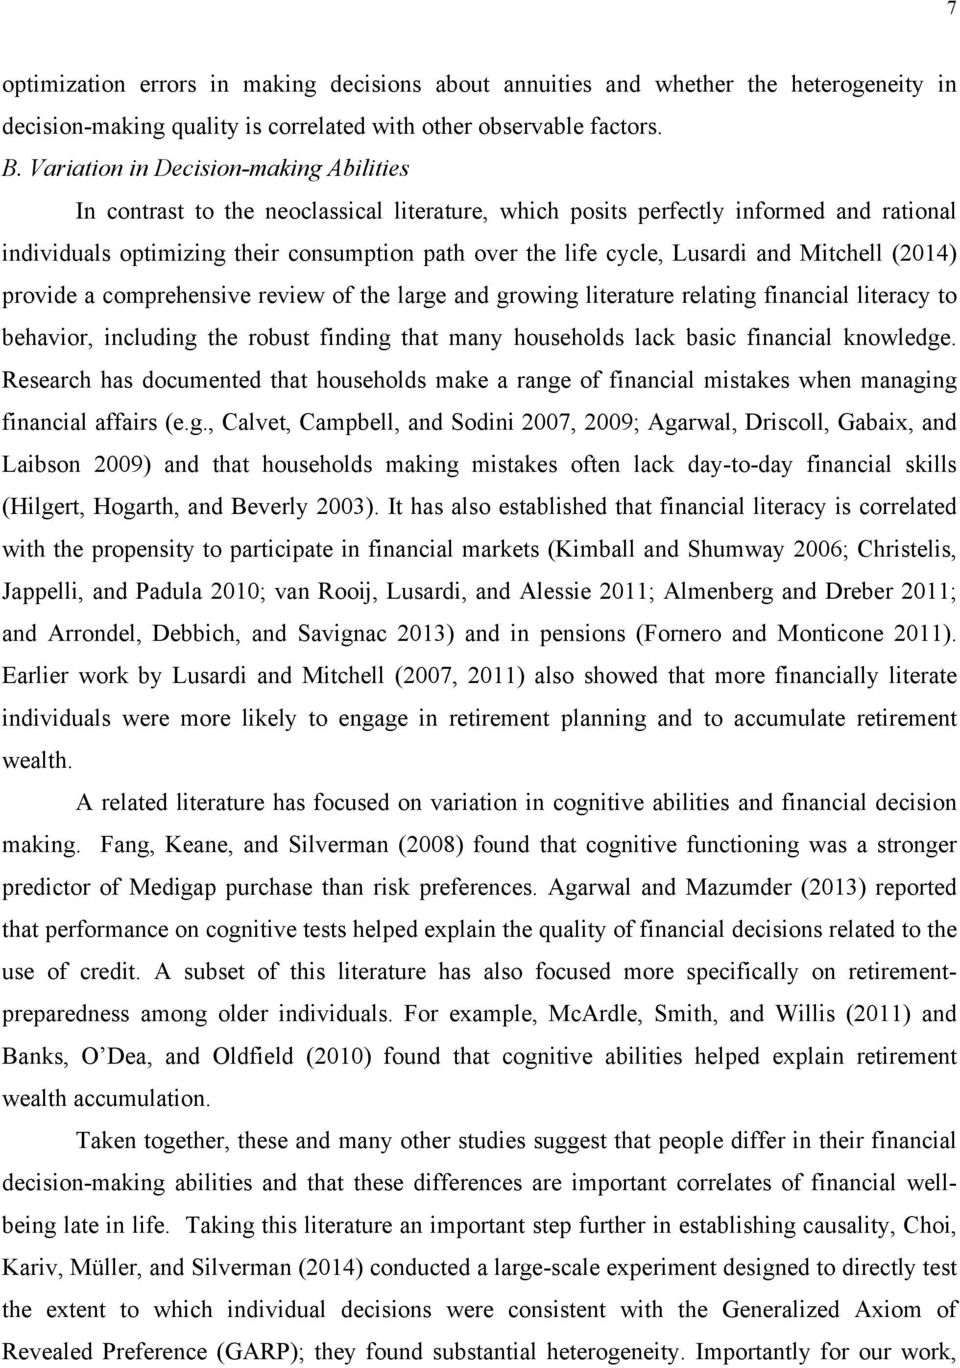 Lusardi and Mitchell (2014) provide a comprehensive review of the large and growing literature relating financial literacy to behavior, including the robust finding that many households lack basic